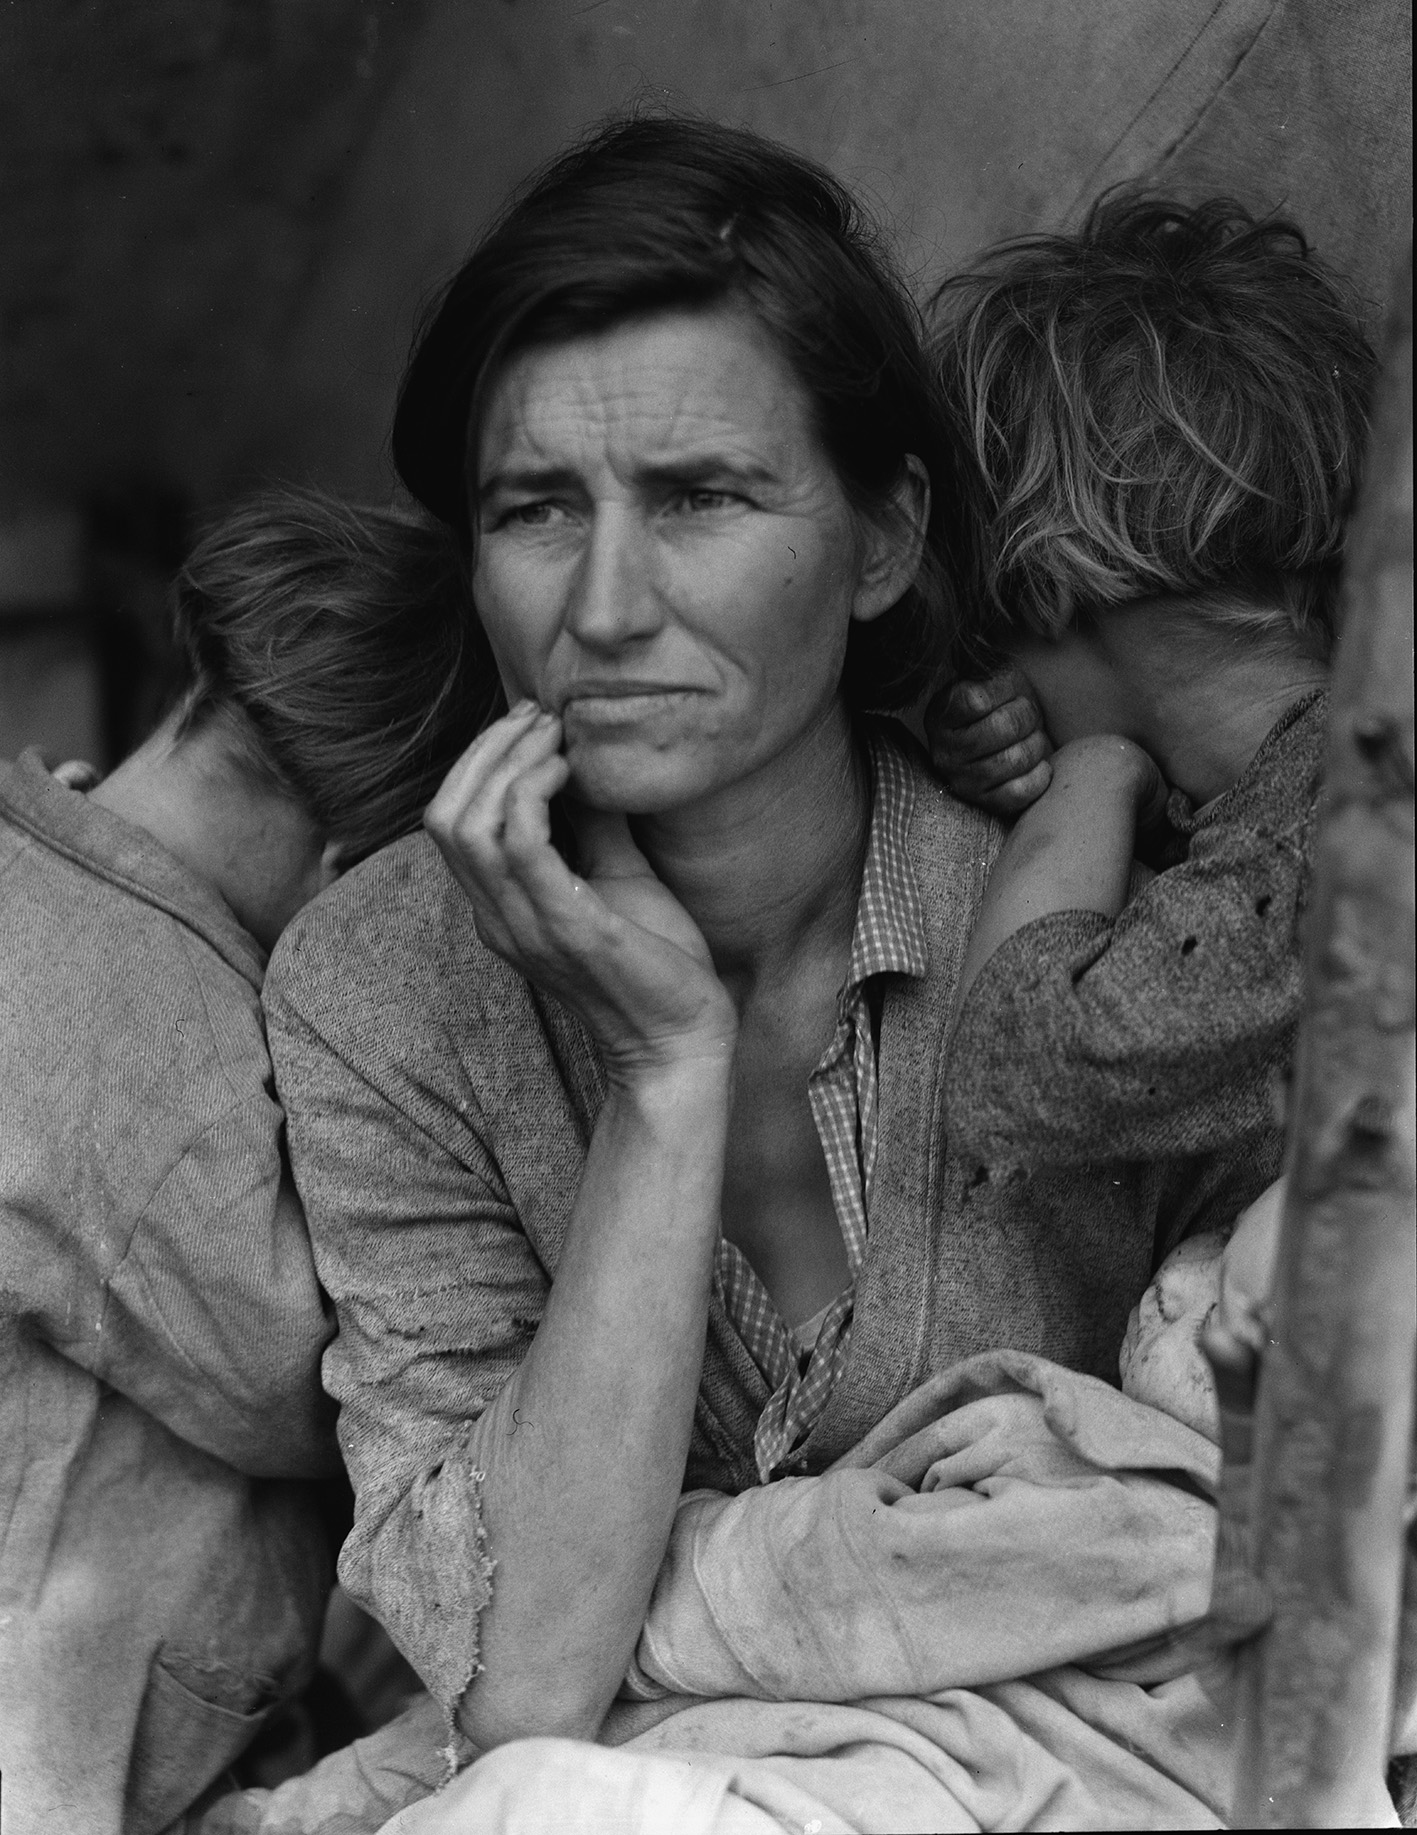 Dorothea Lange, Migrant Mother, 1936. Altro titolo: Destitute pea pickers in California. Mother of seven children. Age thirthy-two. Nipomo, California. The Library of Congress, Washington DC.